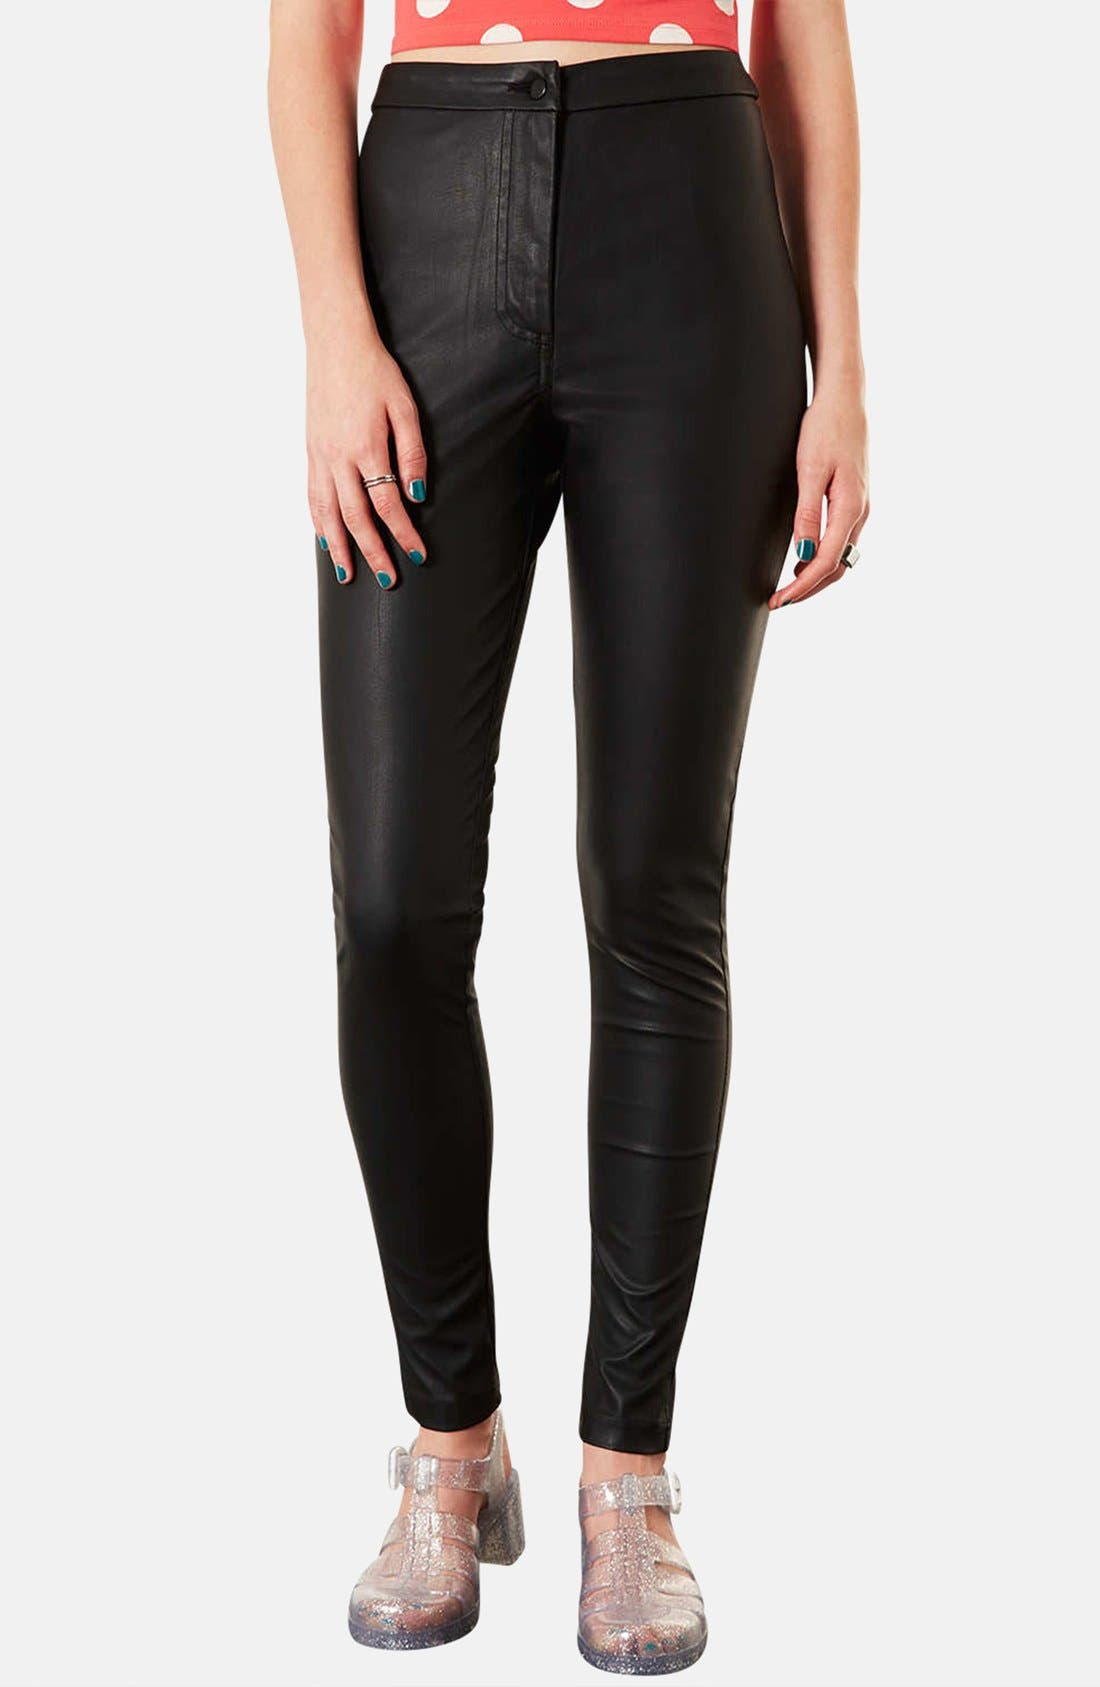 Alternate Image 1 Selected - Topshop 'Debbie' High Waist Faux Leather Pants